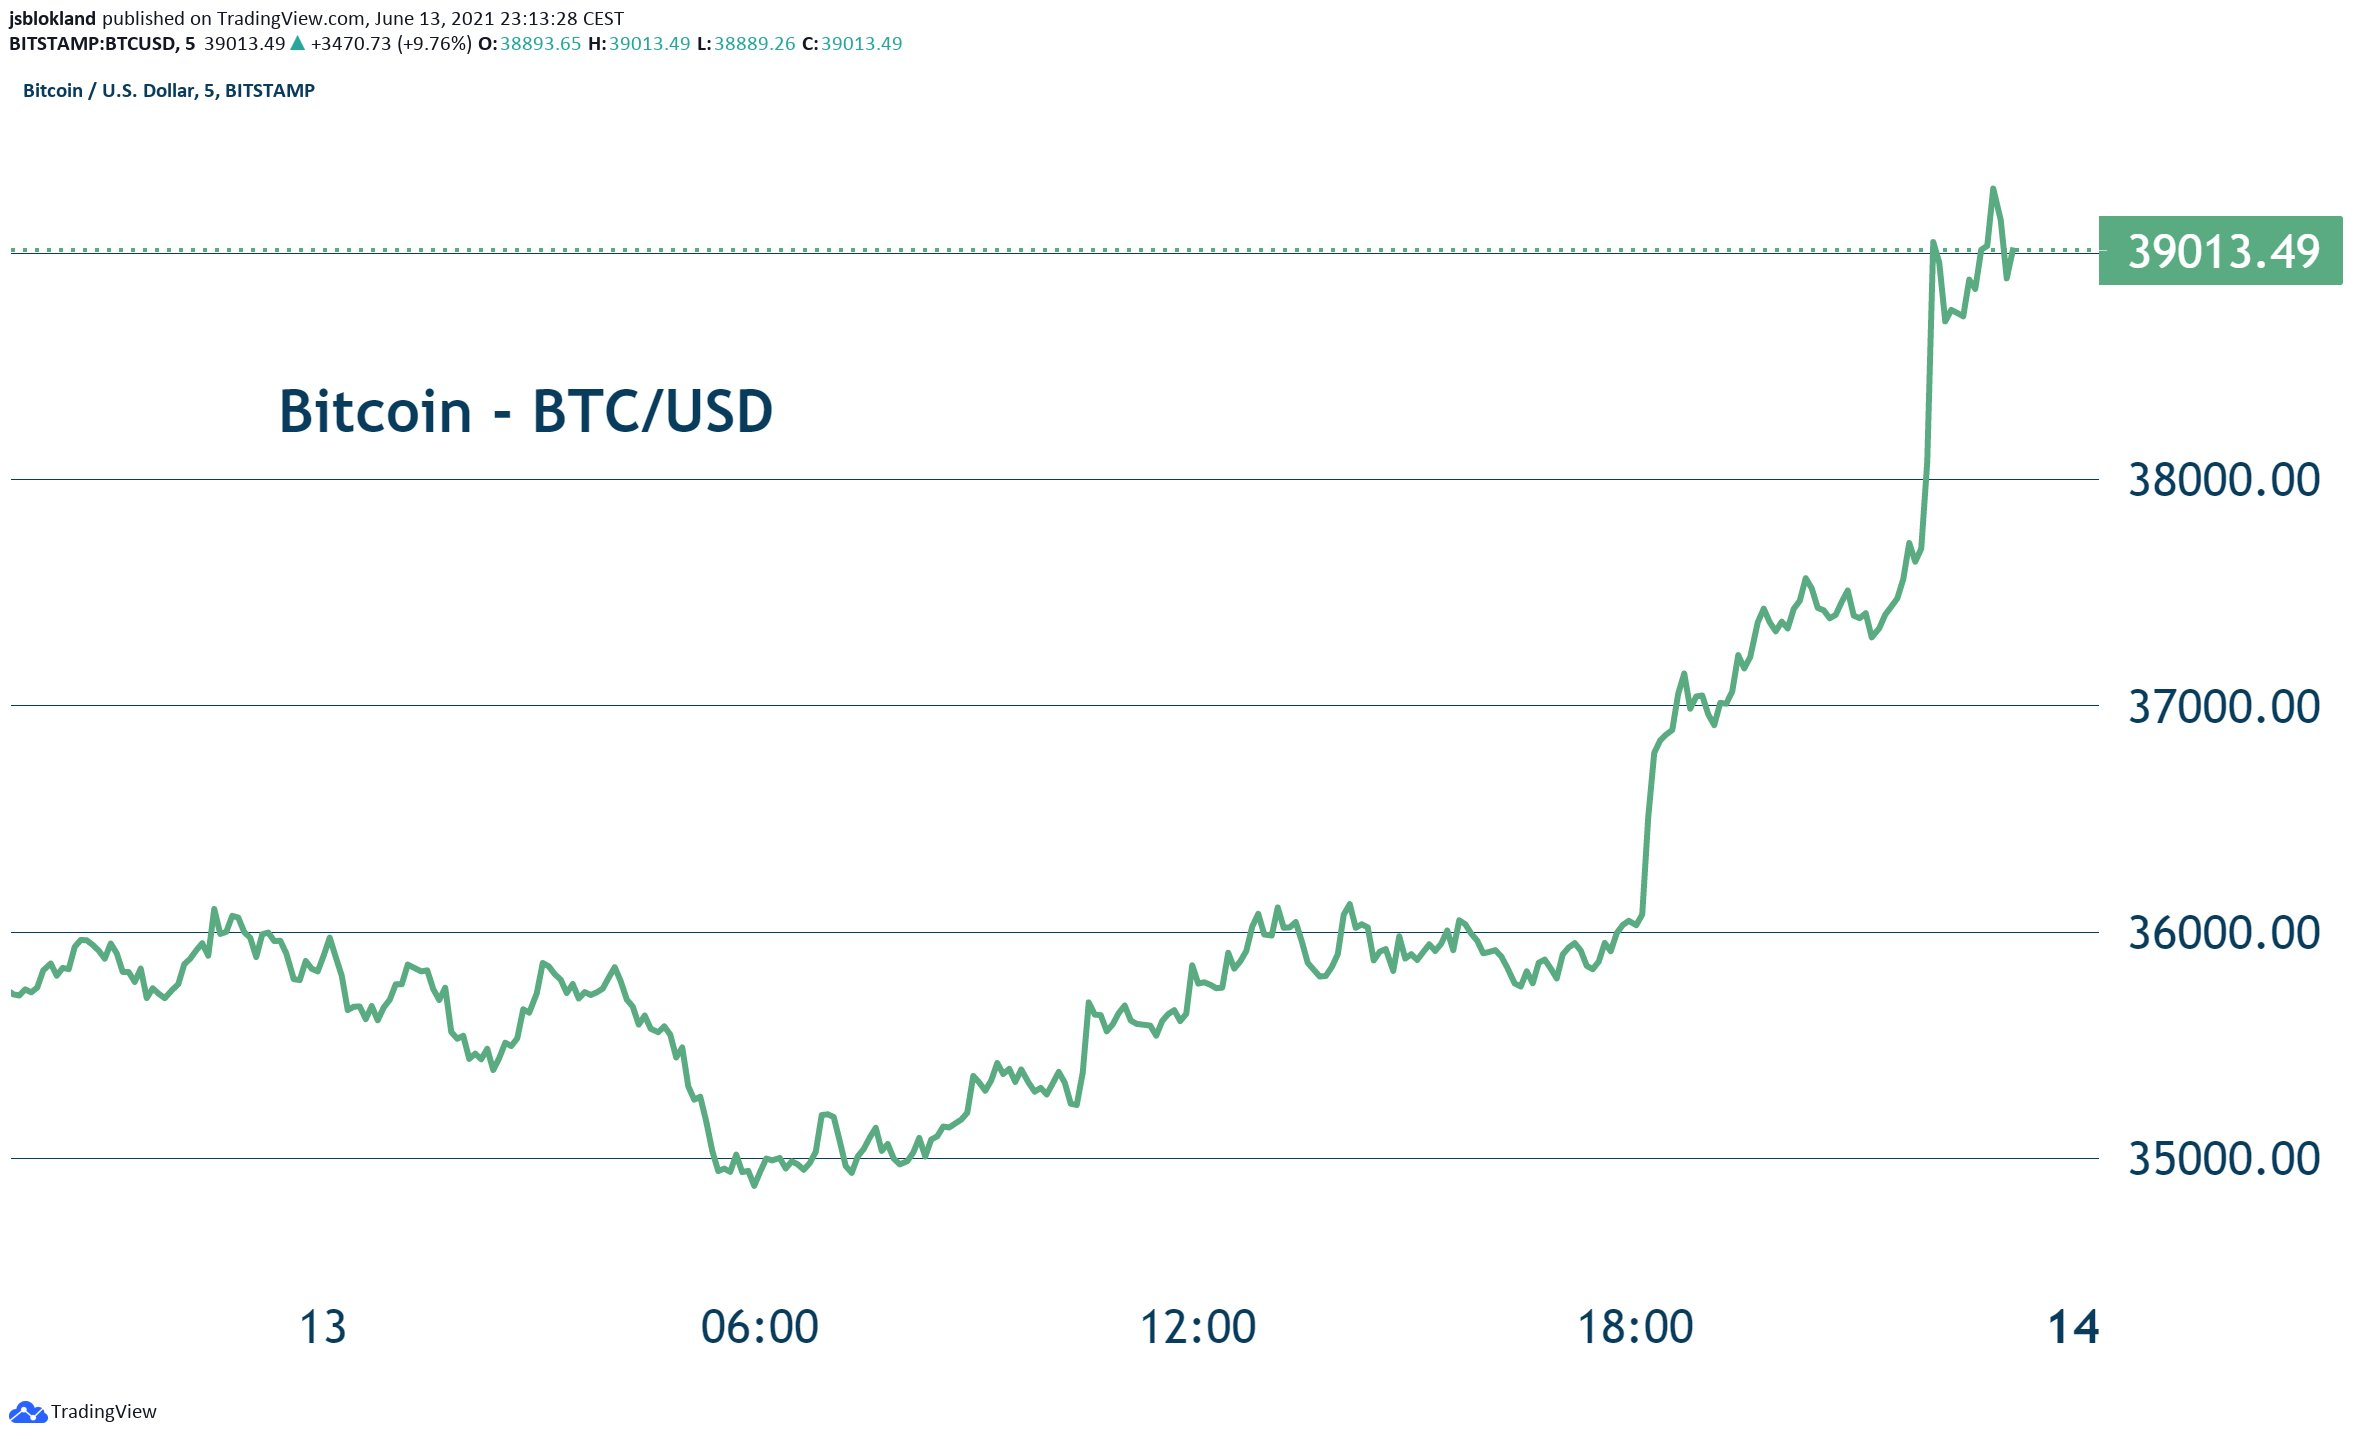 Bitcoin is back above $39,000 level